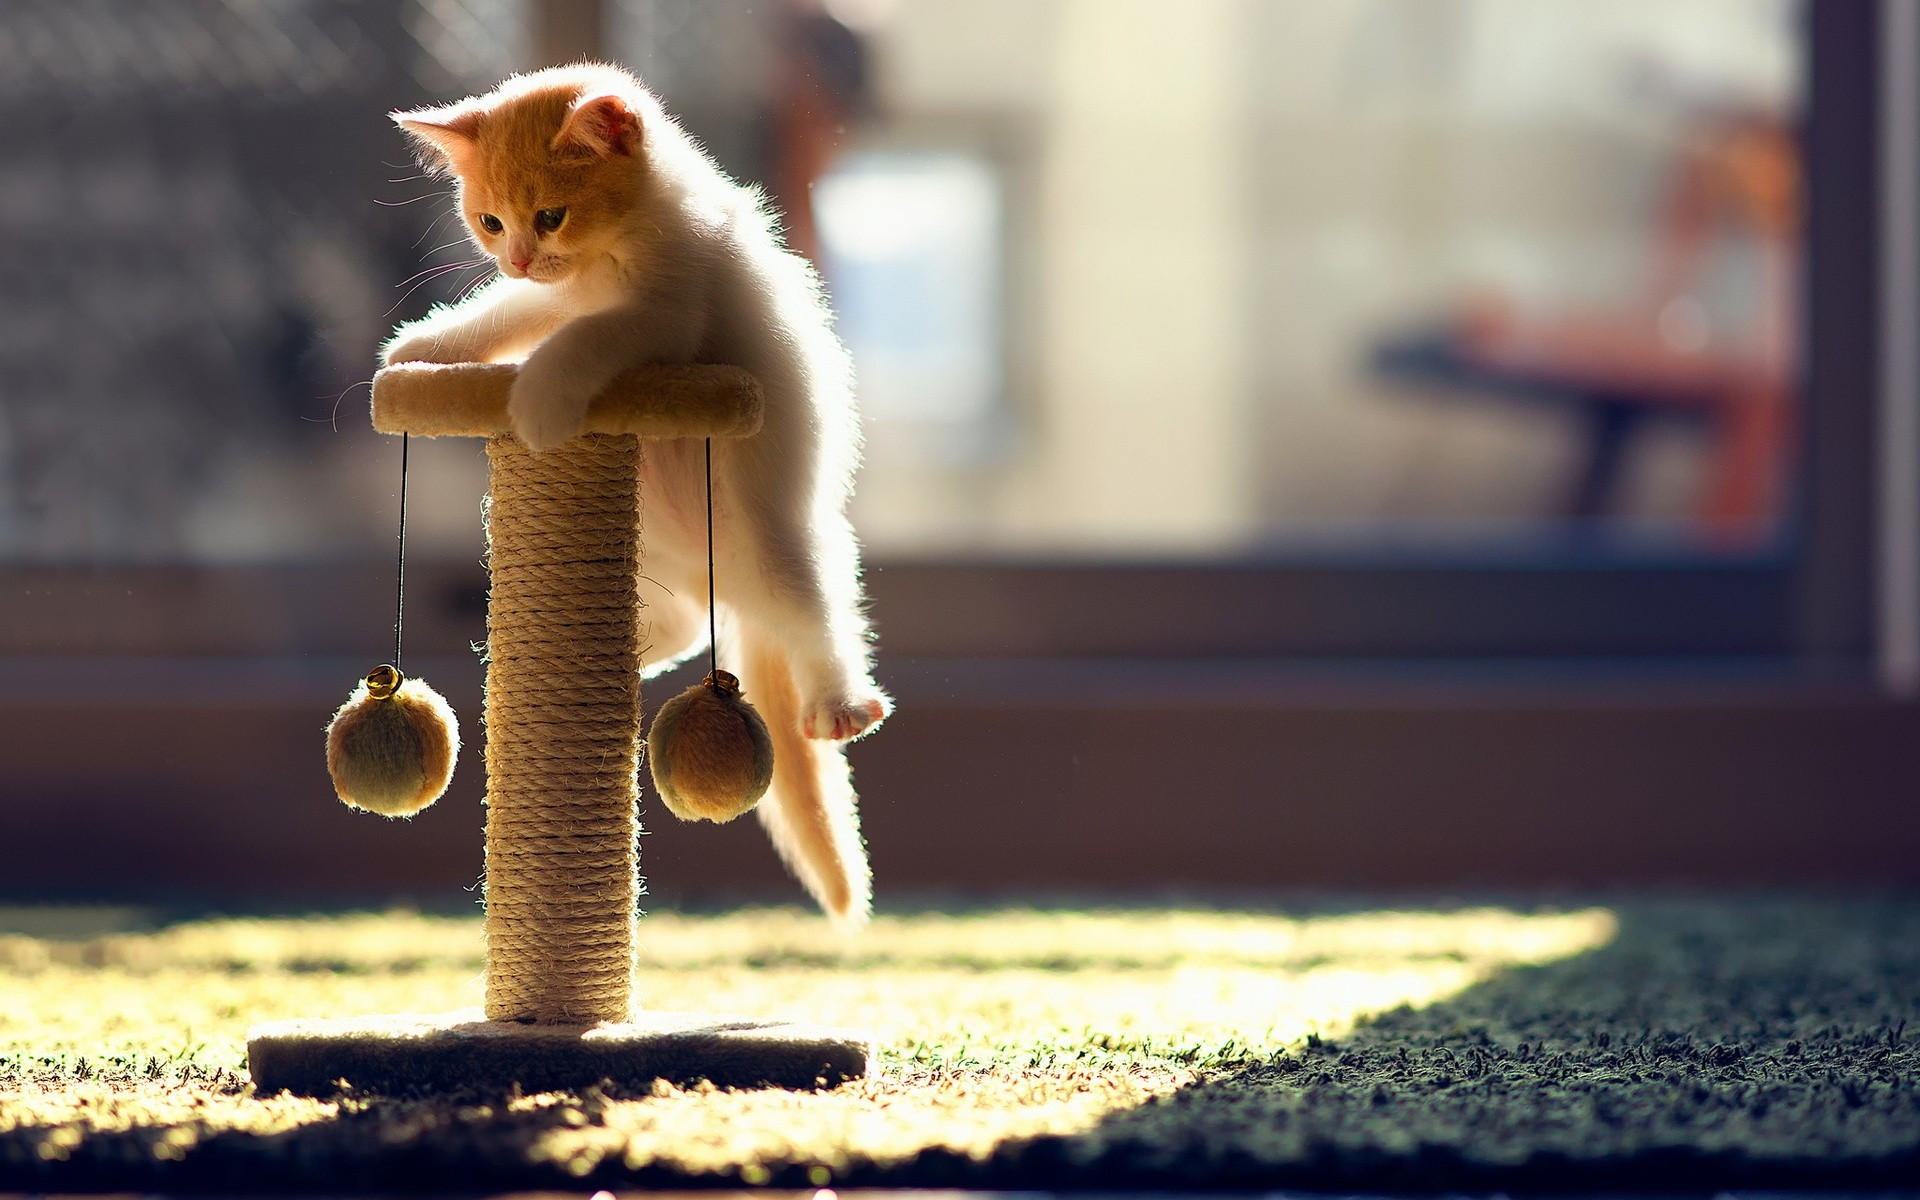 Playful Cat Animal Wallpaper HD for Mobile